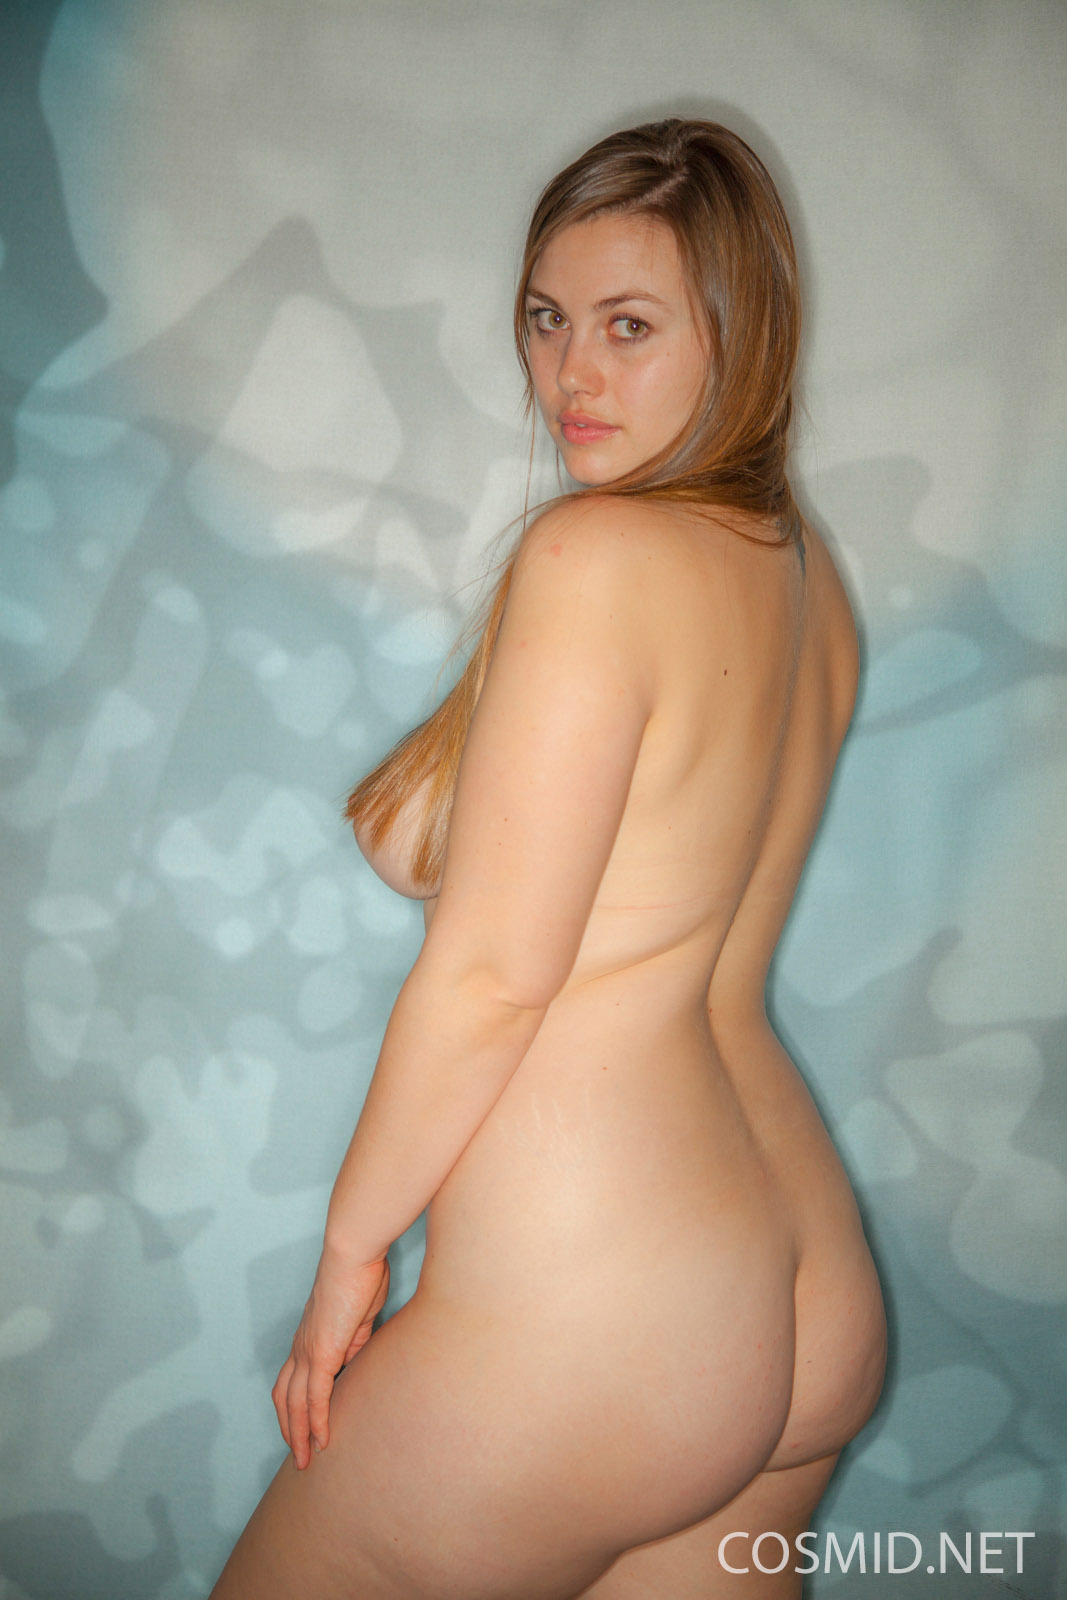 from Enrique young nude cg girls